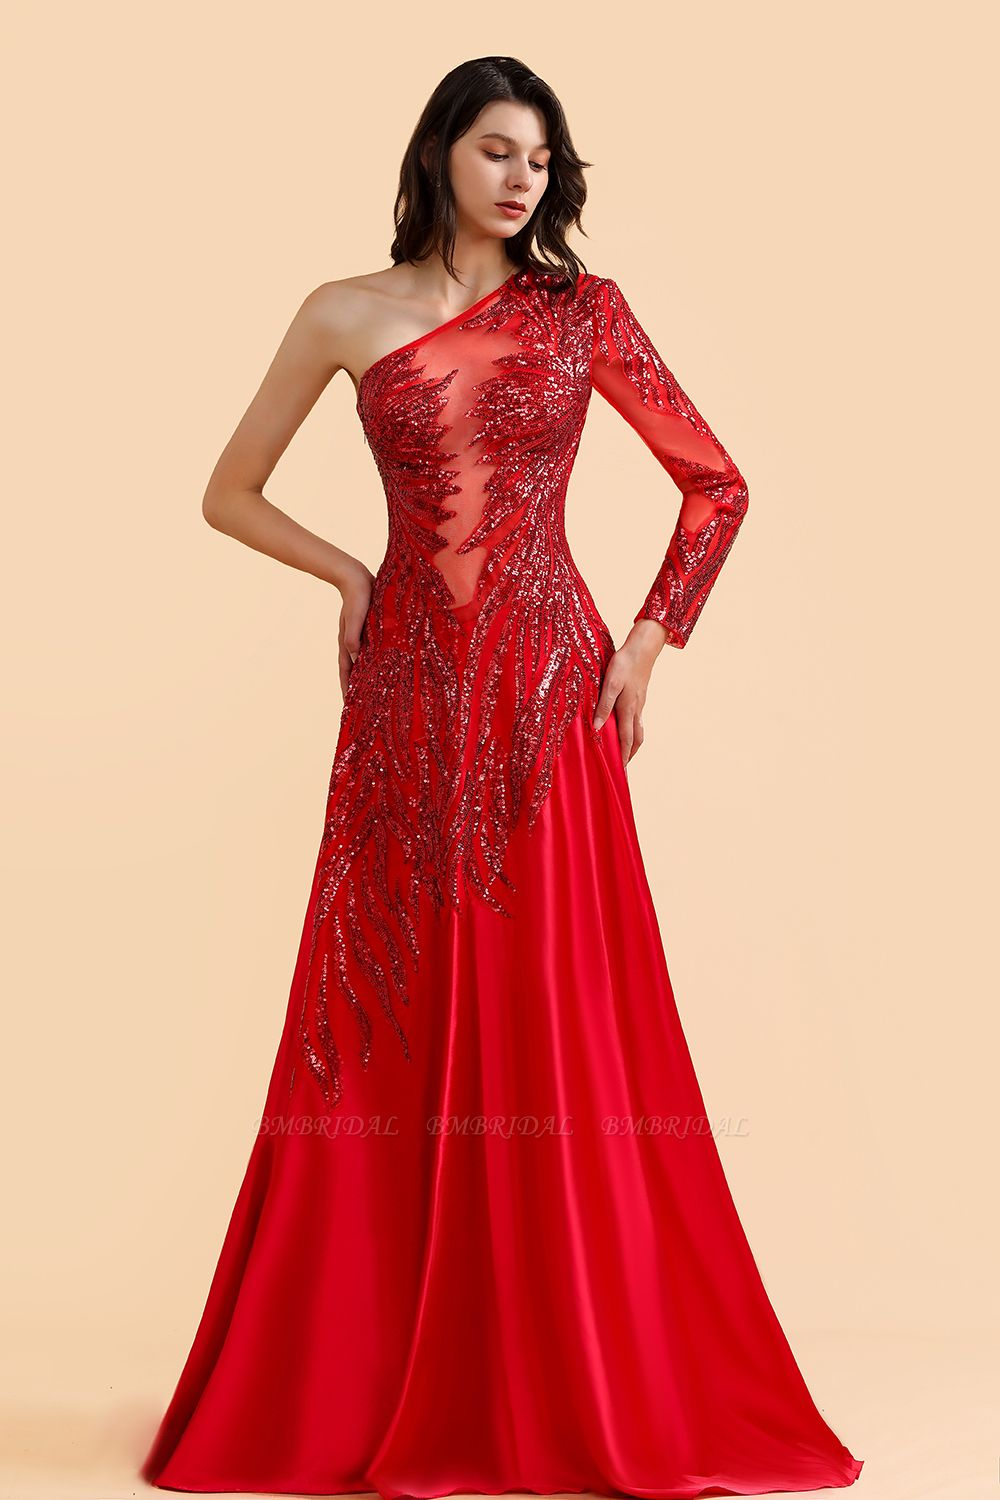 BMbridal Chic One-Shoulder Red Sequined Prom Dresses One-Sleeve Sexy Party Dress On Sale